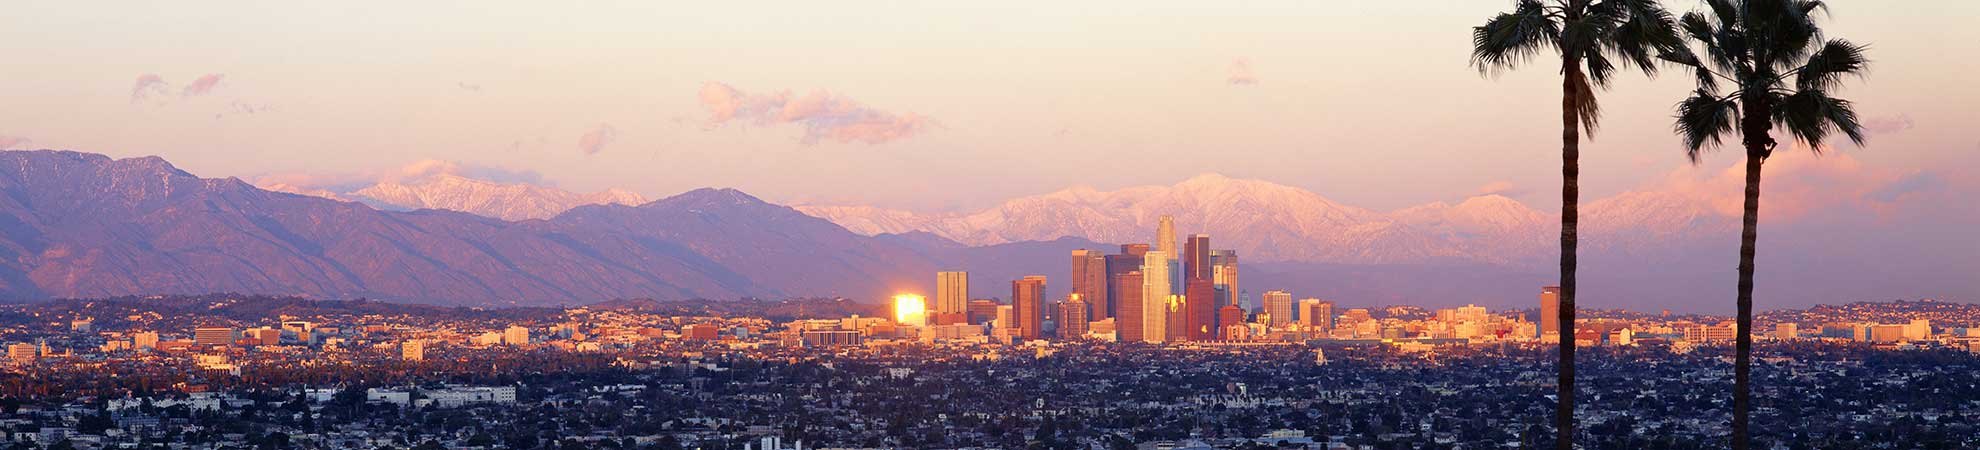 Tourisme Los Angeles